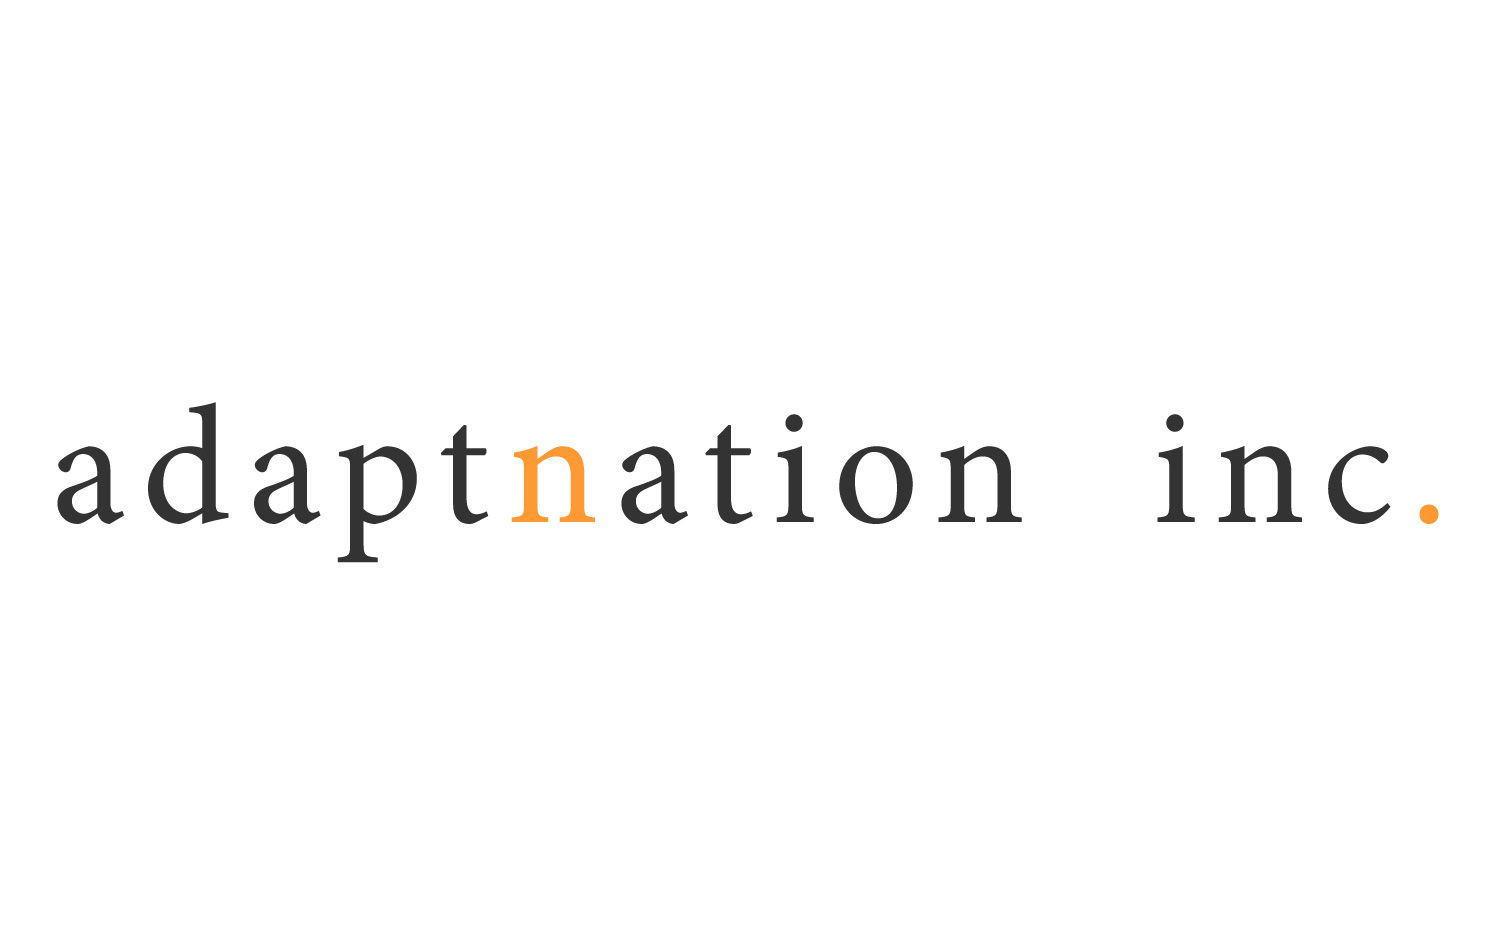 Adaptnation Inc.